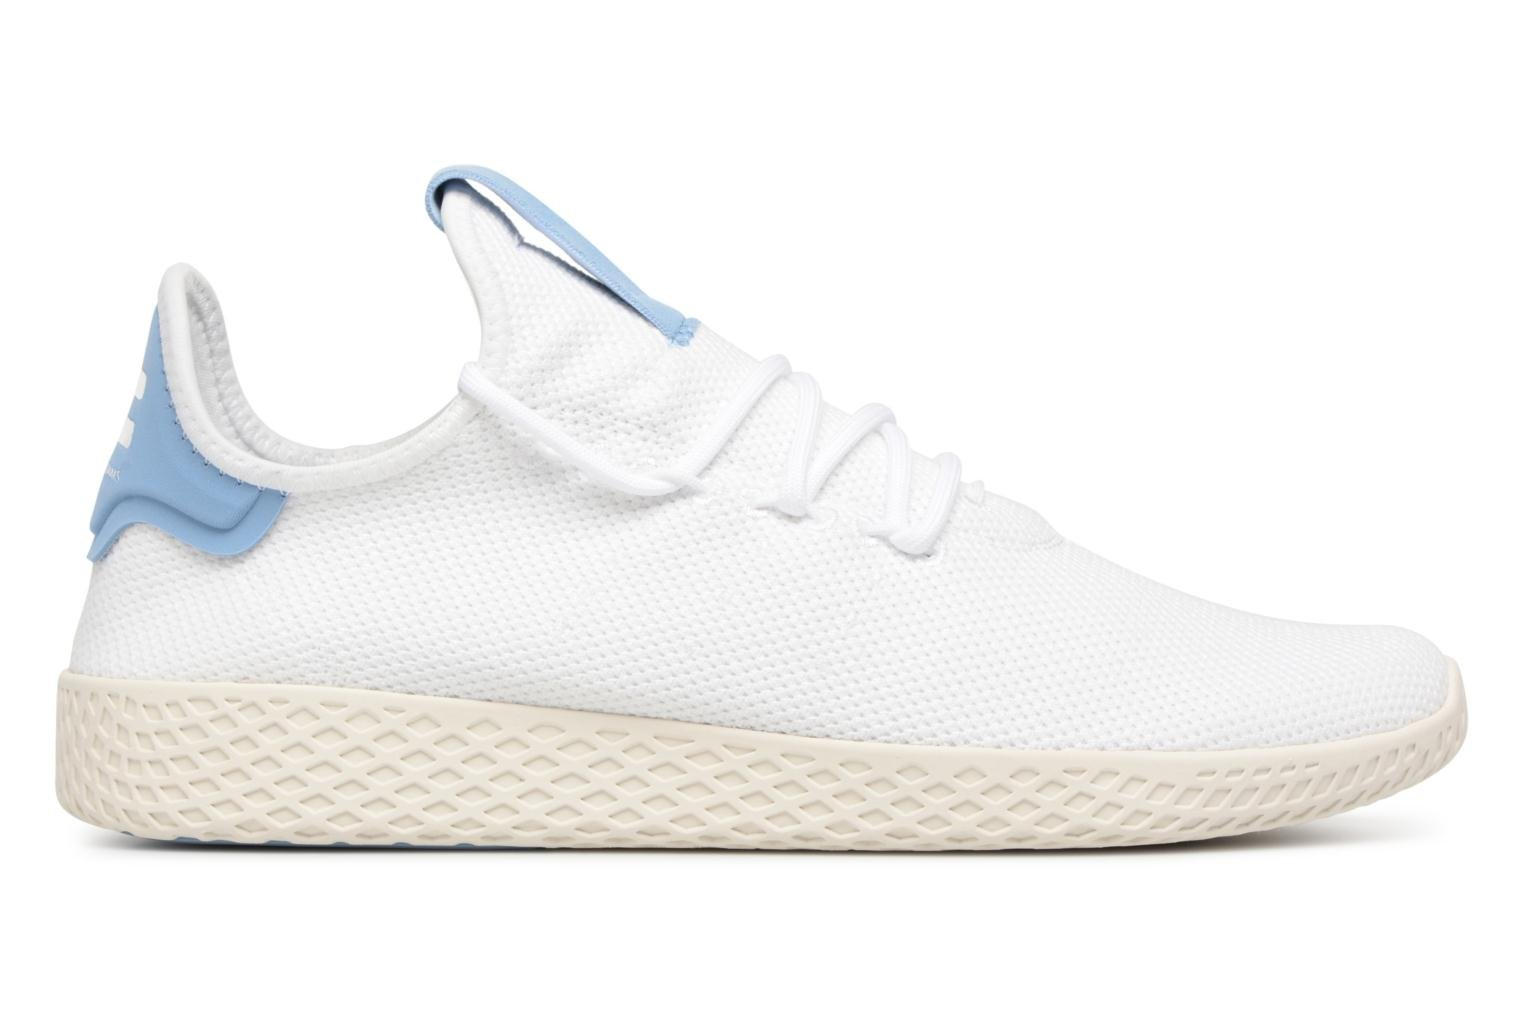 Sneakers Adidas Originals Pharrell Williams Tennis Hu Wit achterkant